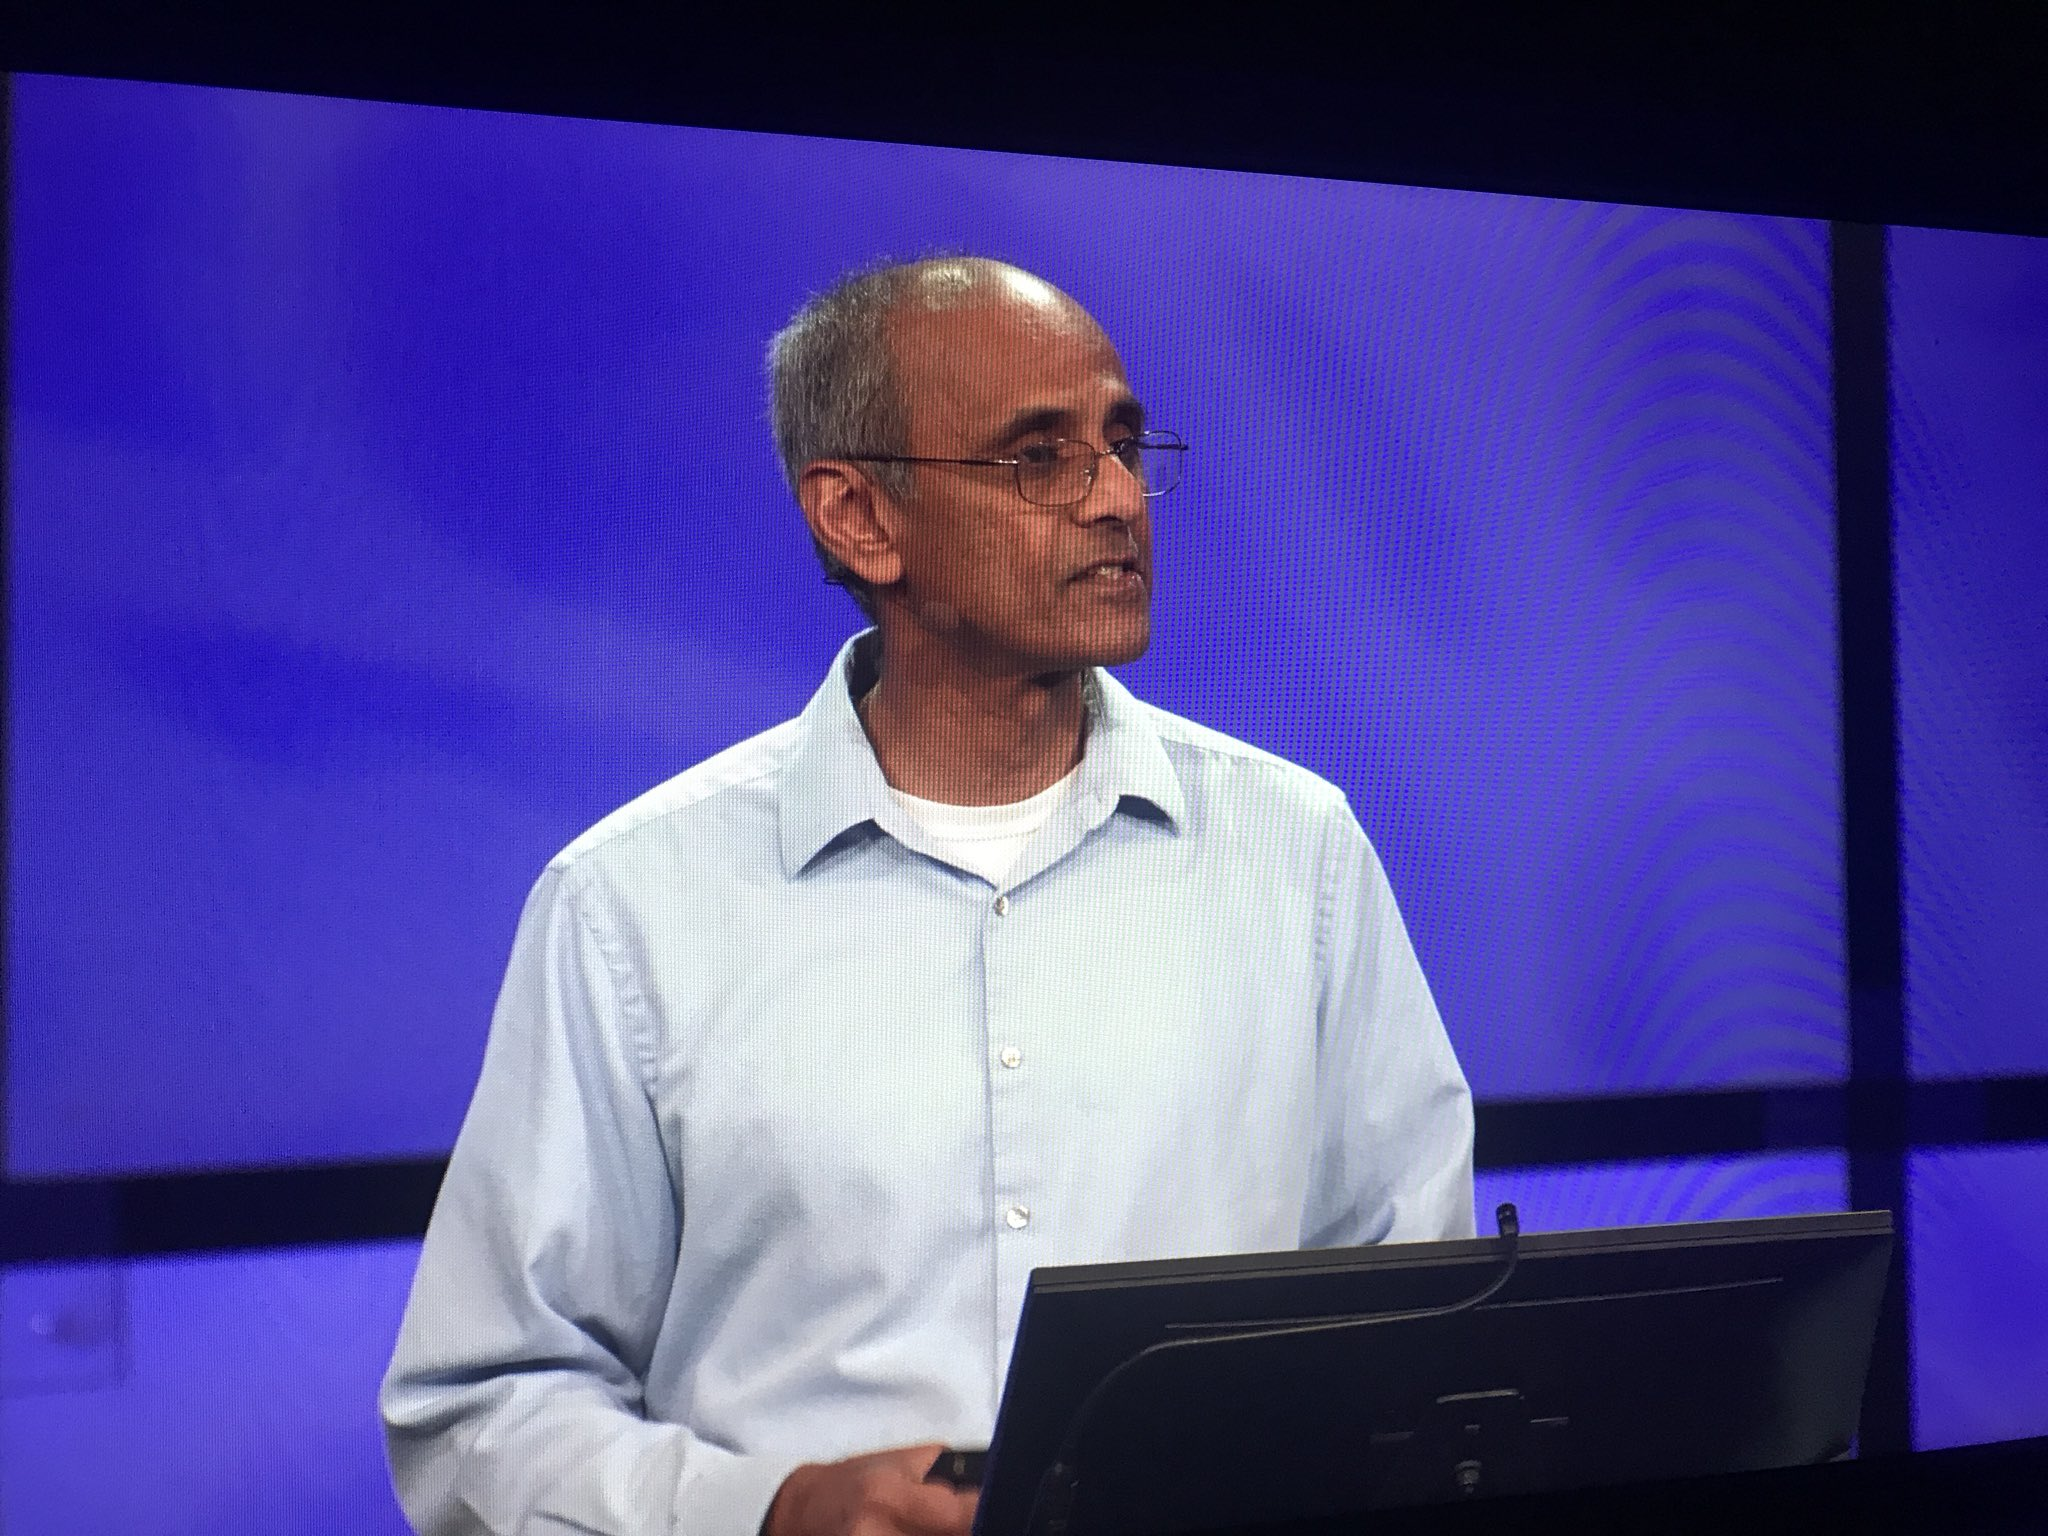 Sud Menon on ArcGIS